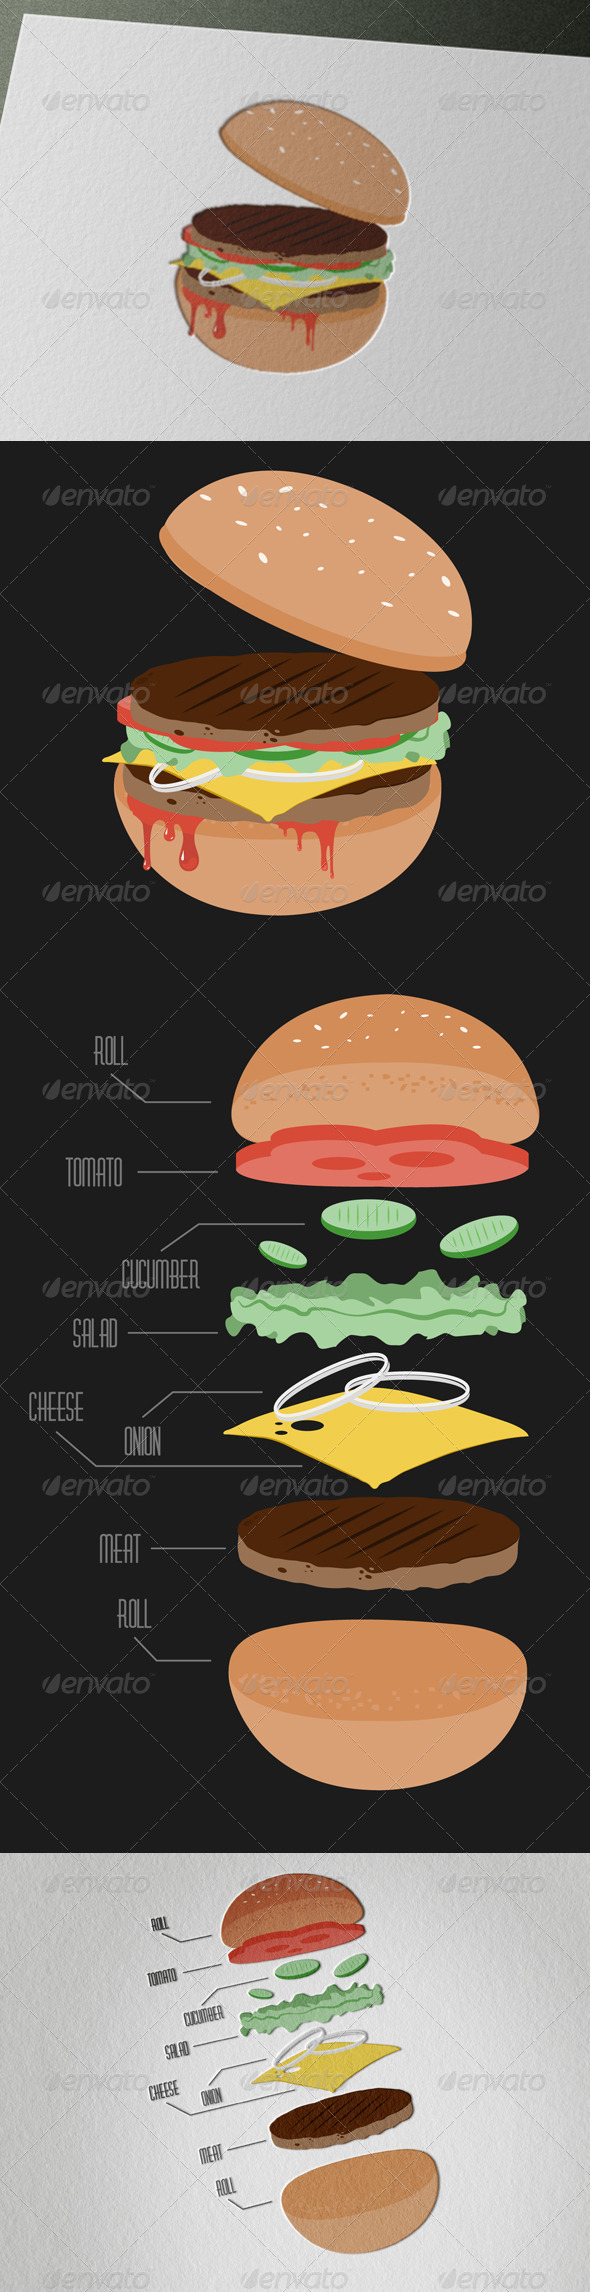 Tasty Vintage Hamburger - Food Objects